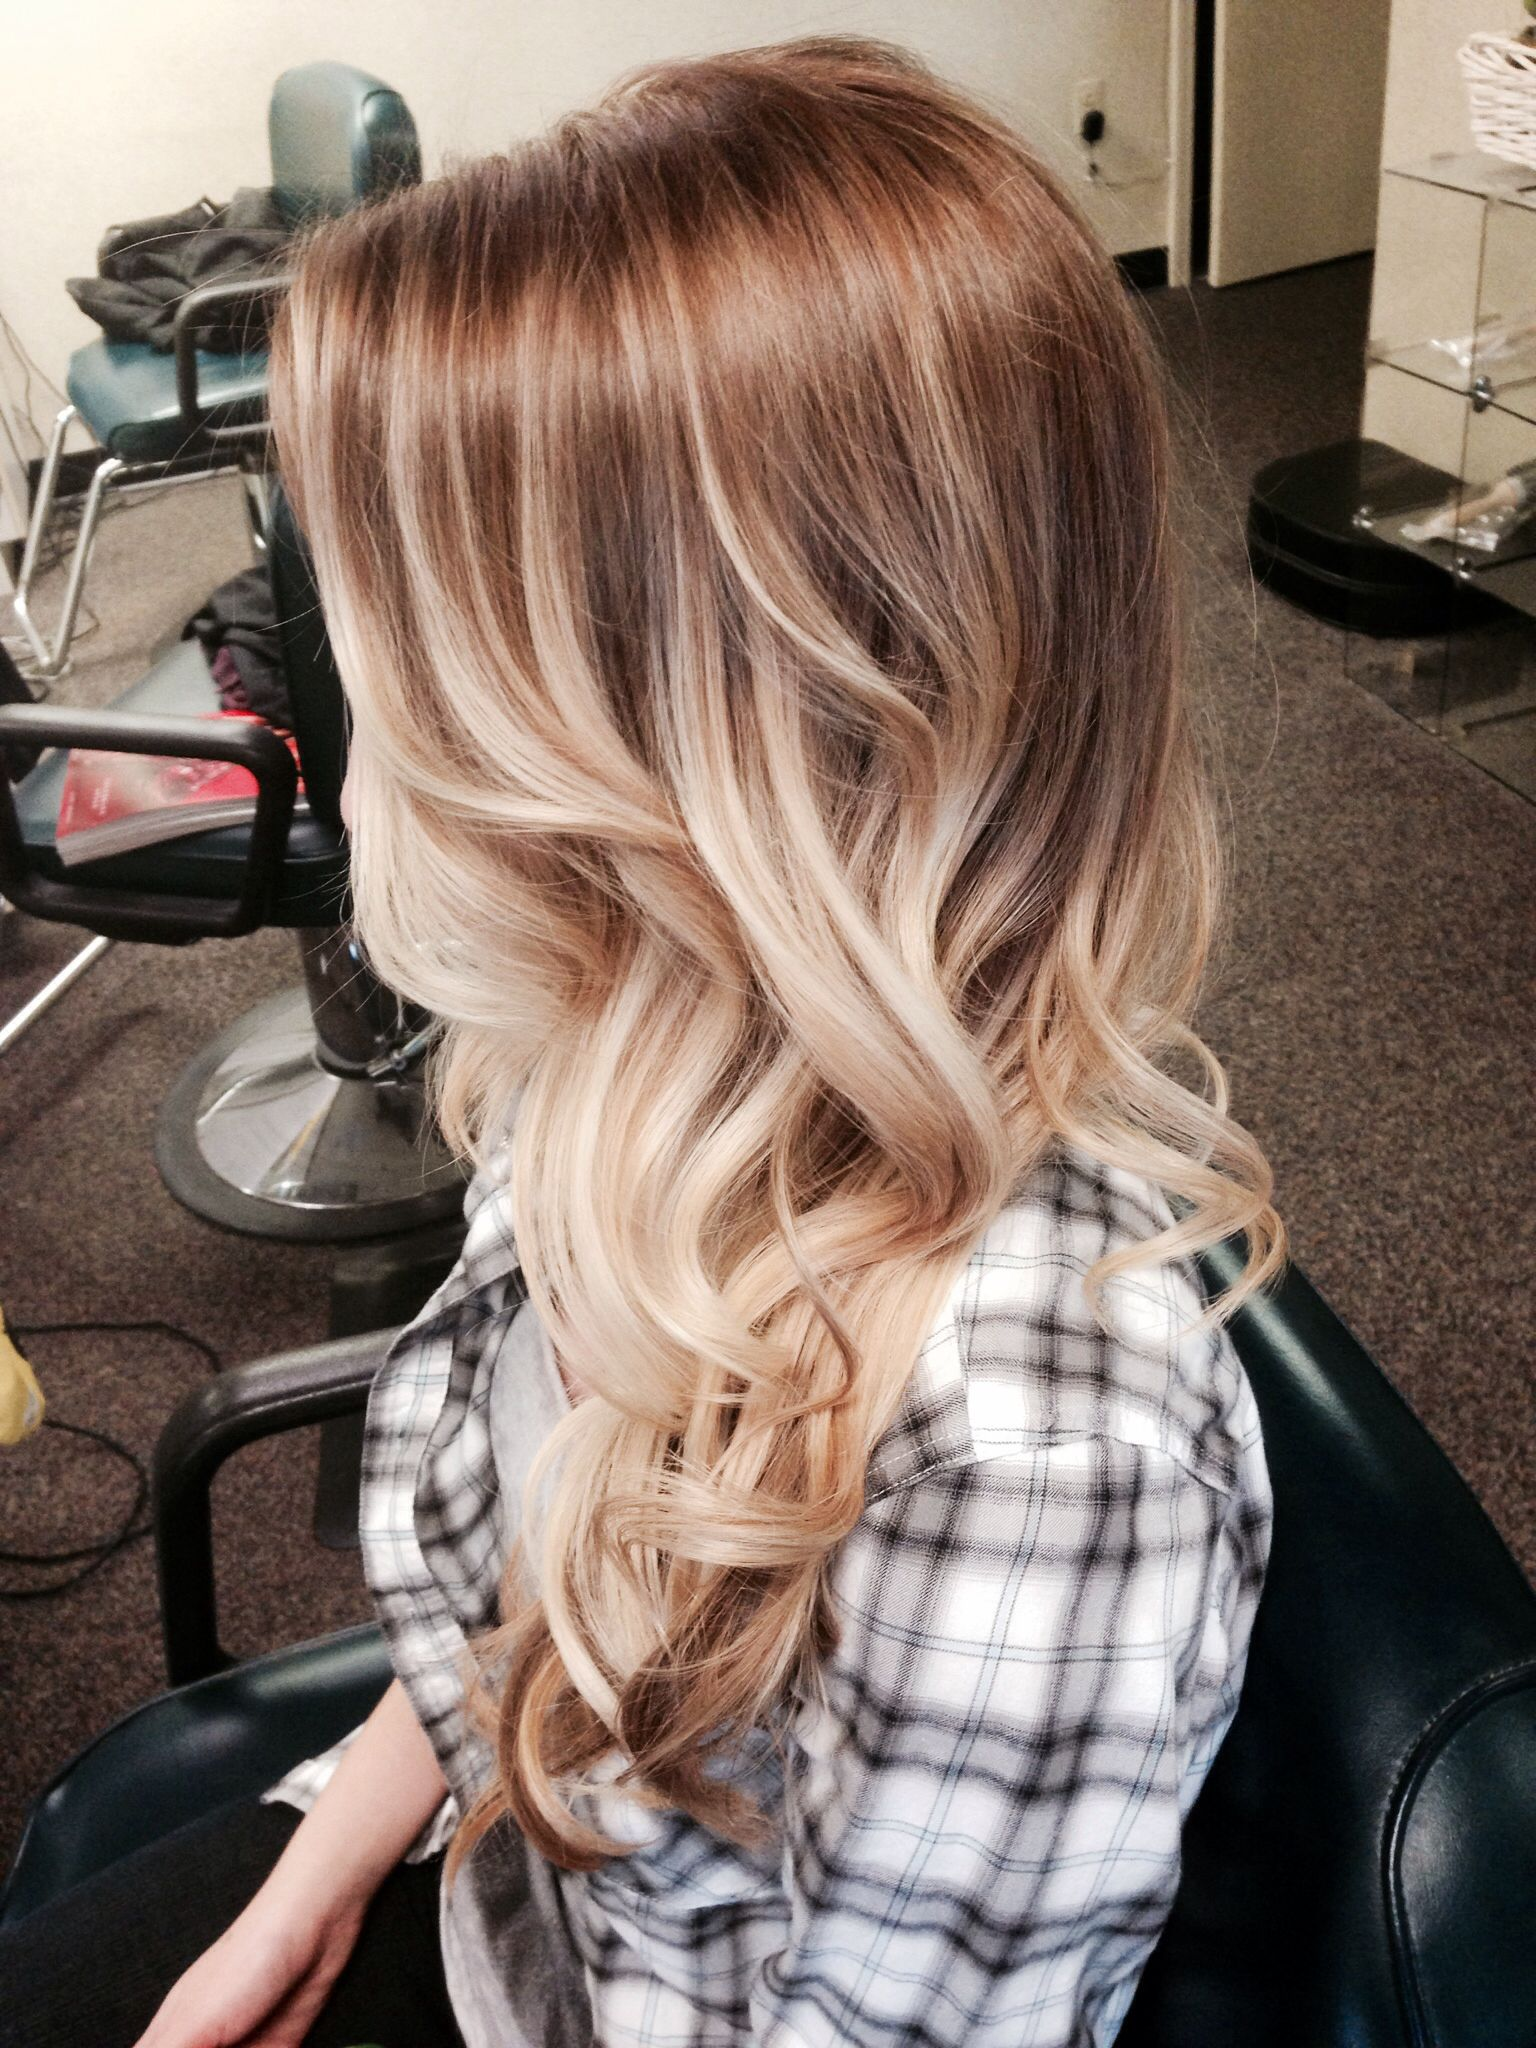 Pleasing 25 Hottest Ombre Hair Color Ideas Right Now Beautiful Ombre Short Hairstyles For Black Women Fulllsitofus